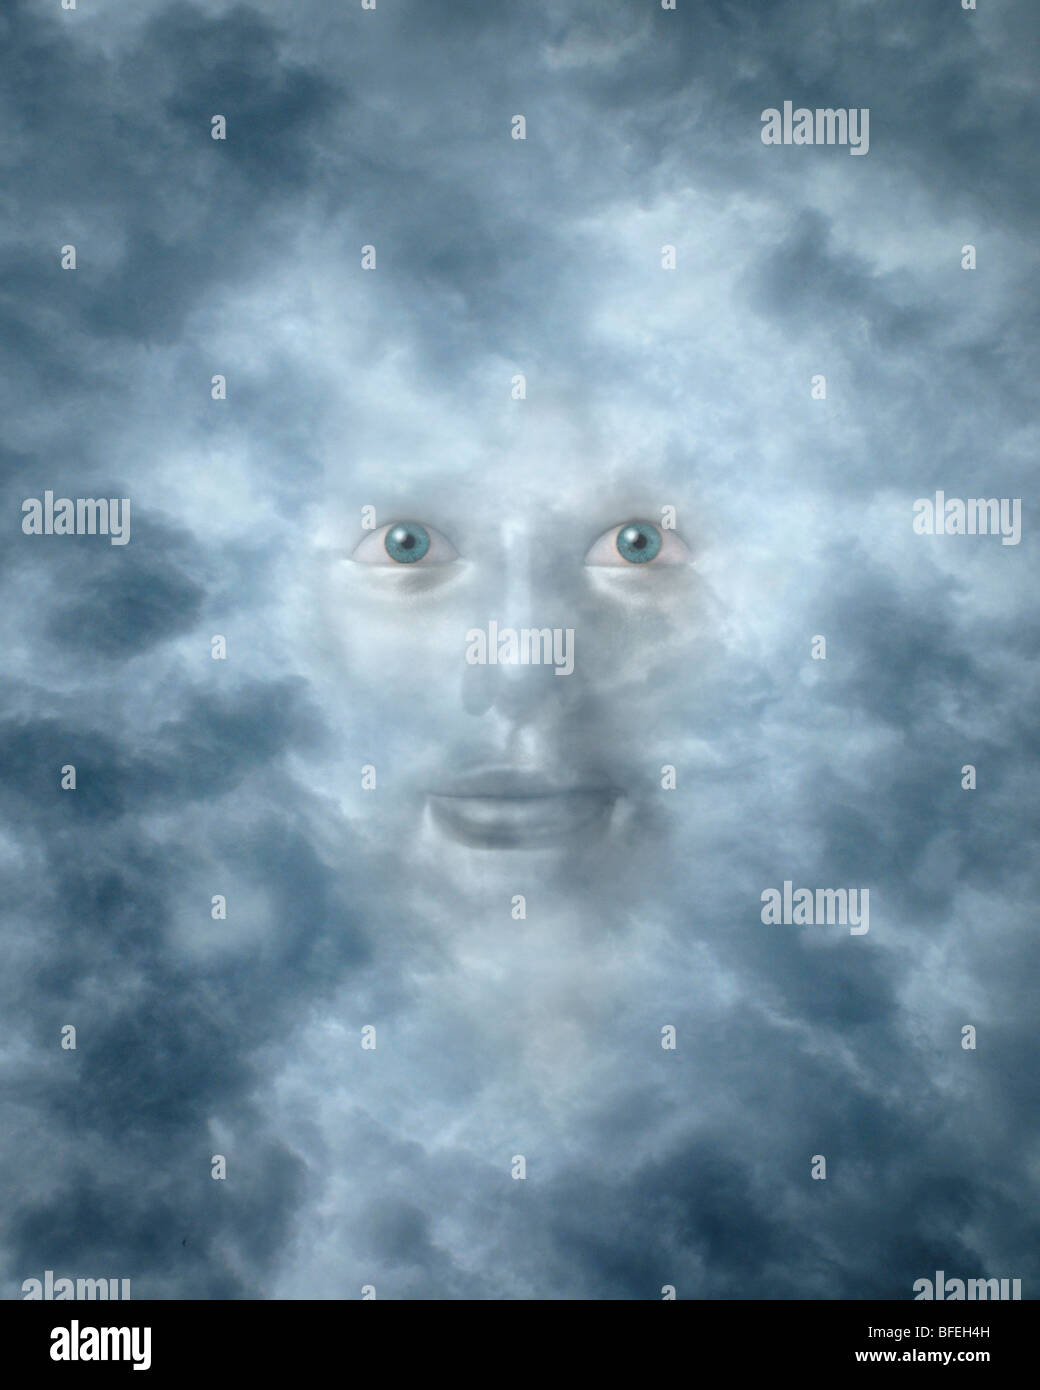 Spiritual face peering through clouds possibly a god or deity - Stock Image